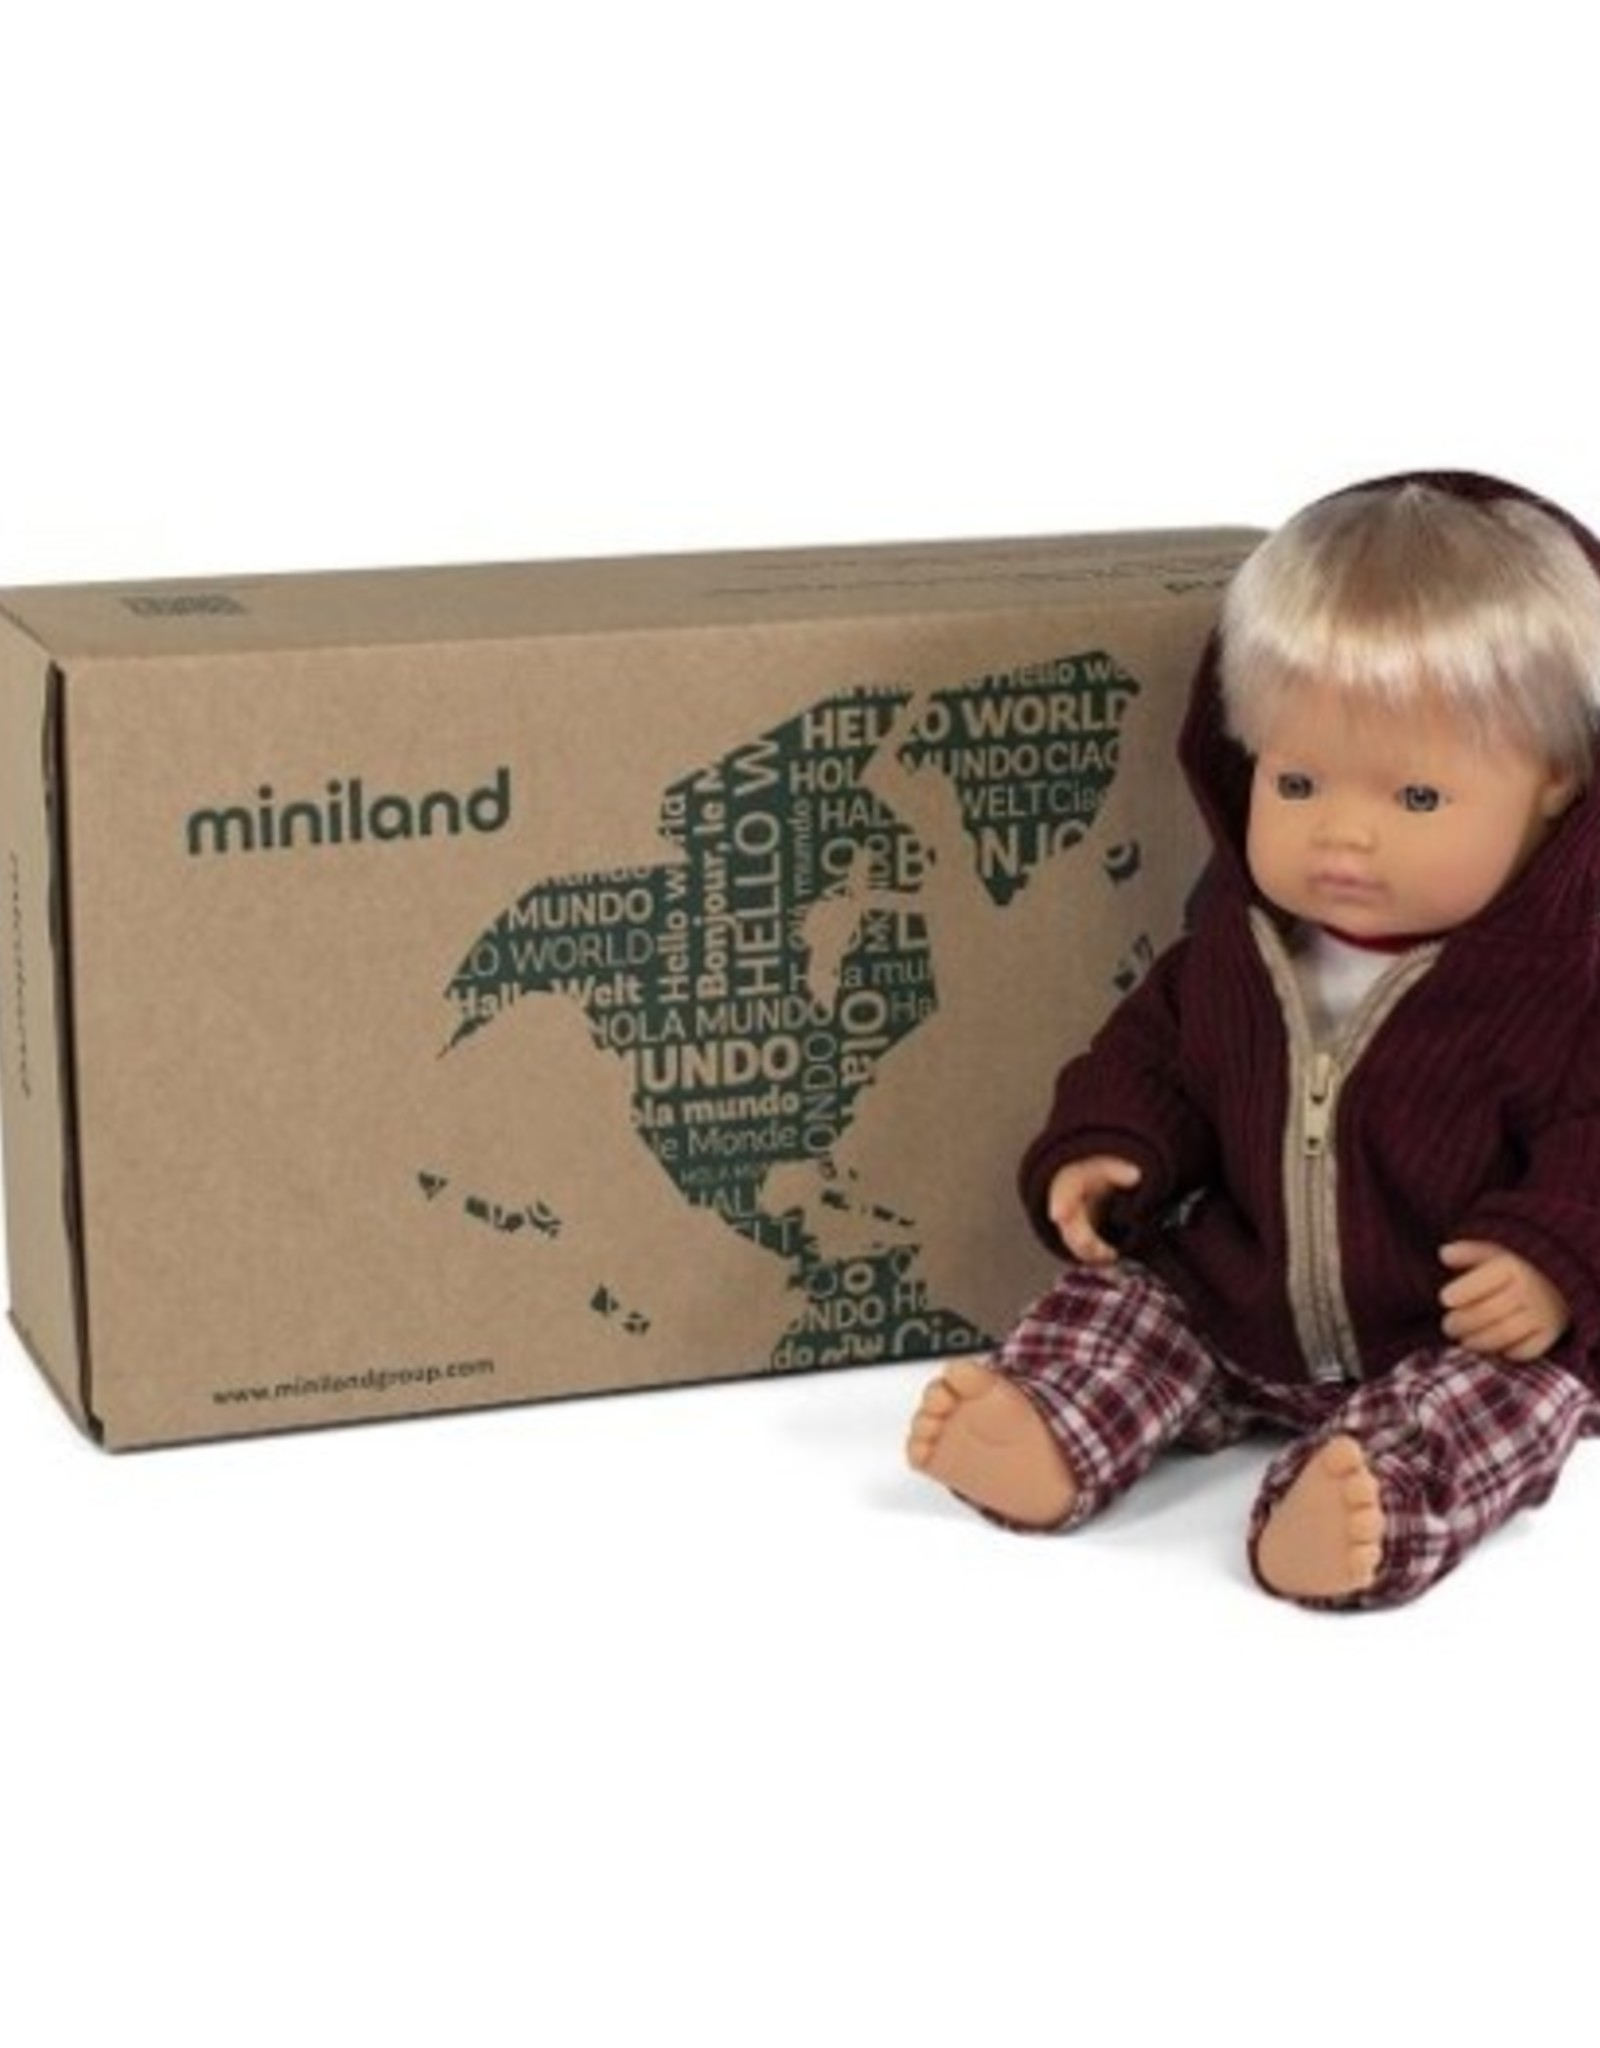 Miniland Miniland Boxed Set - Blond Boy With Winter Outfit